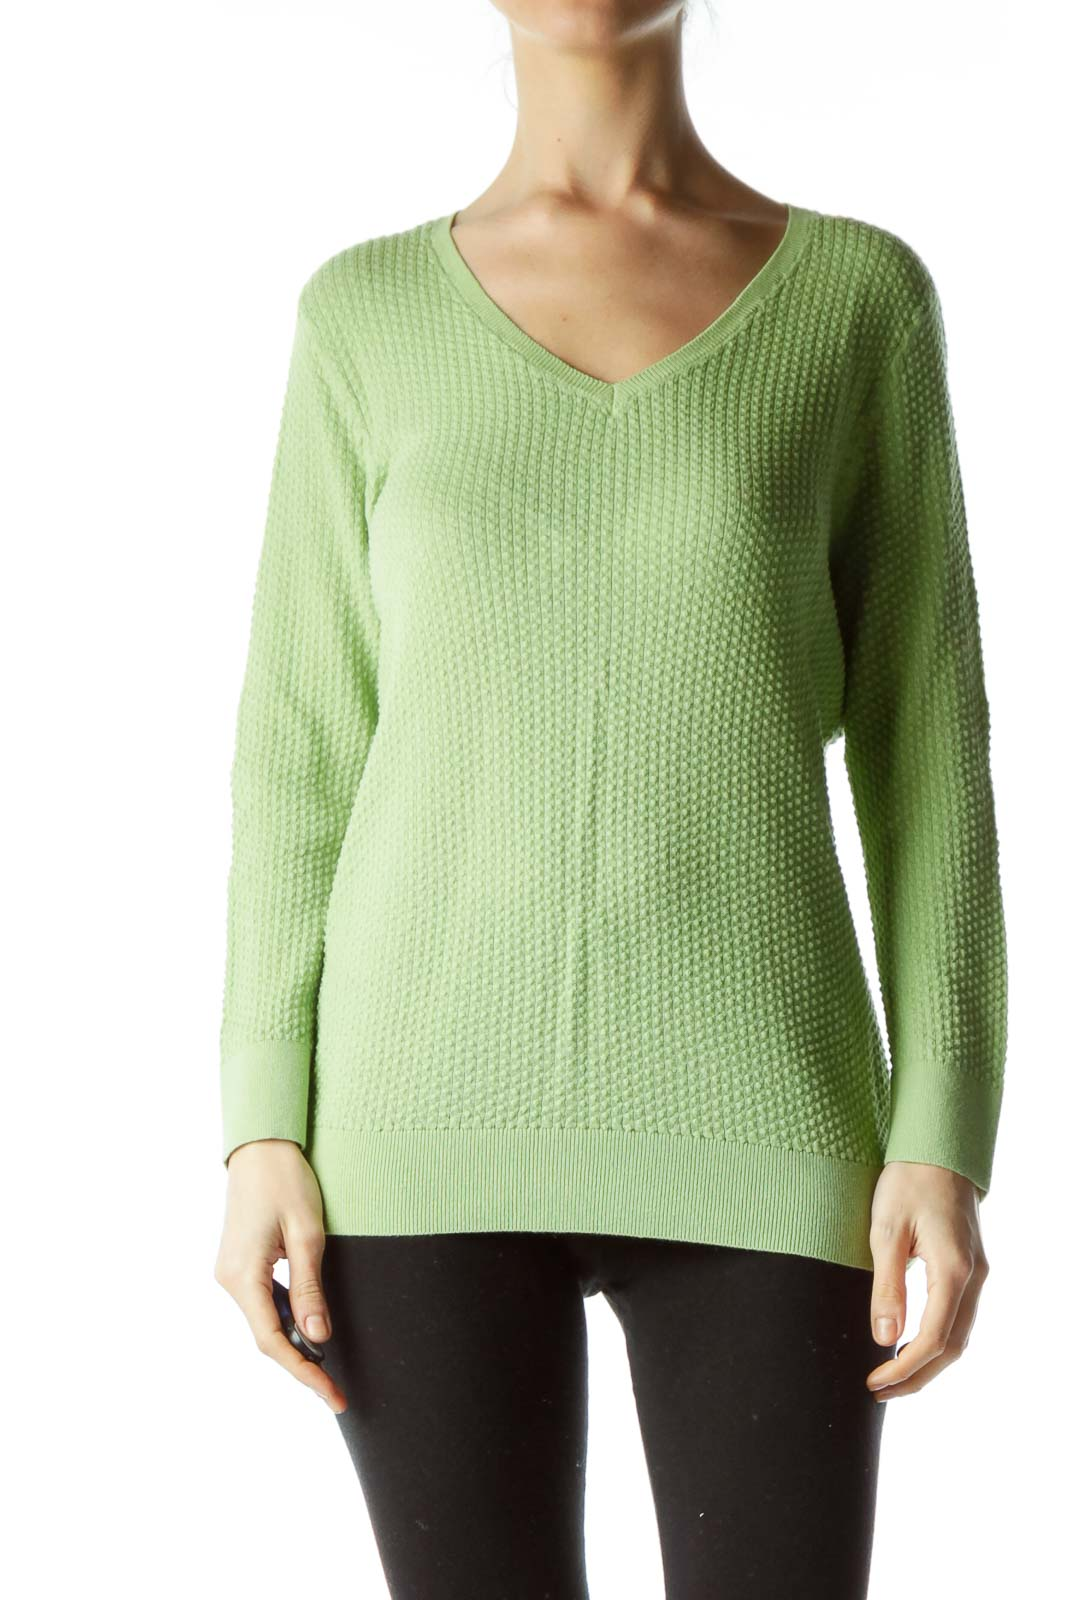 Green Textured Knit Top